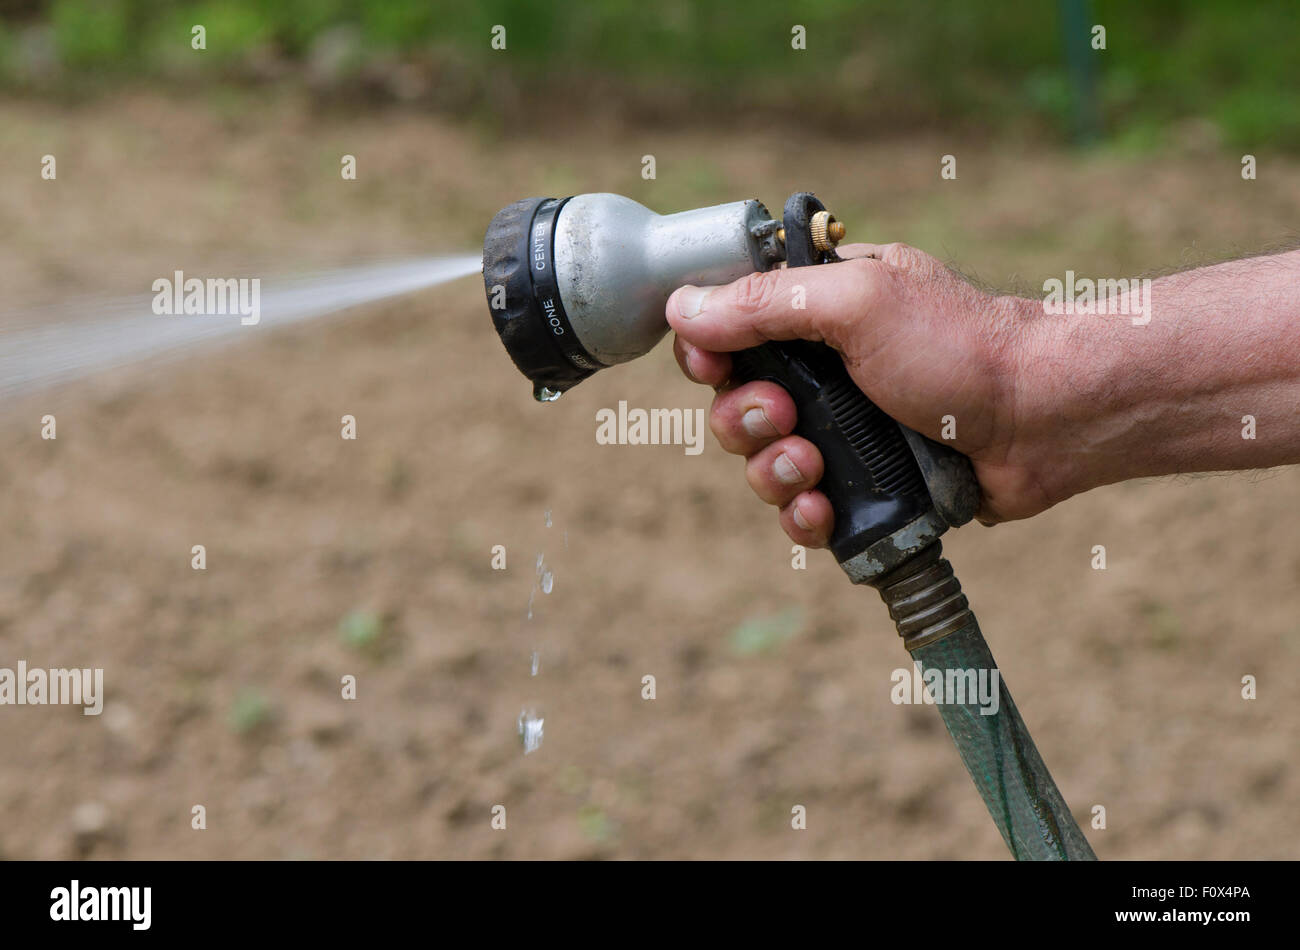 Watering Vegetable Garden Manually With A Hose. USA